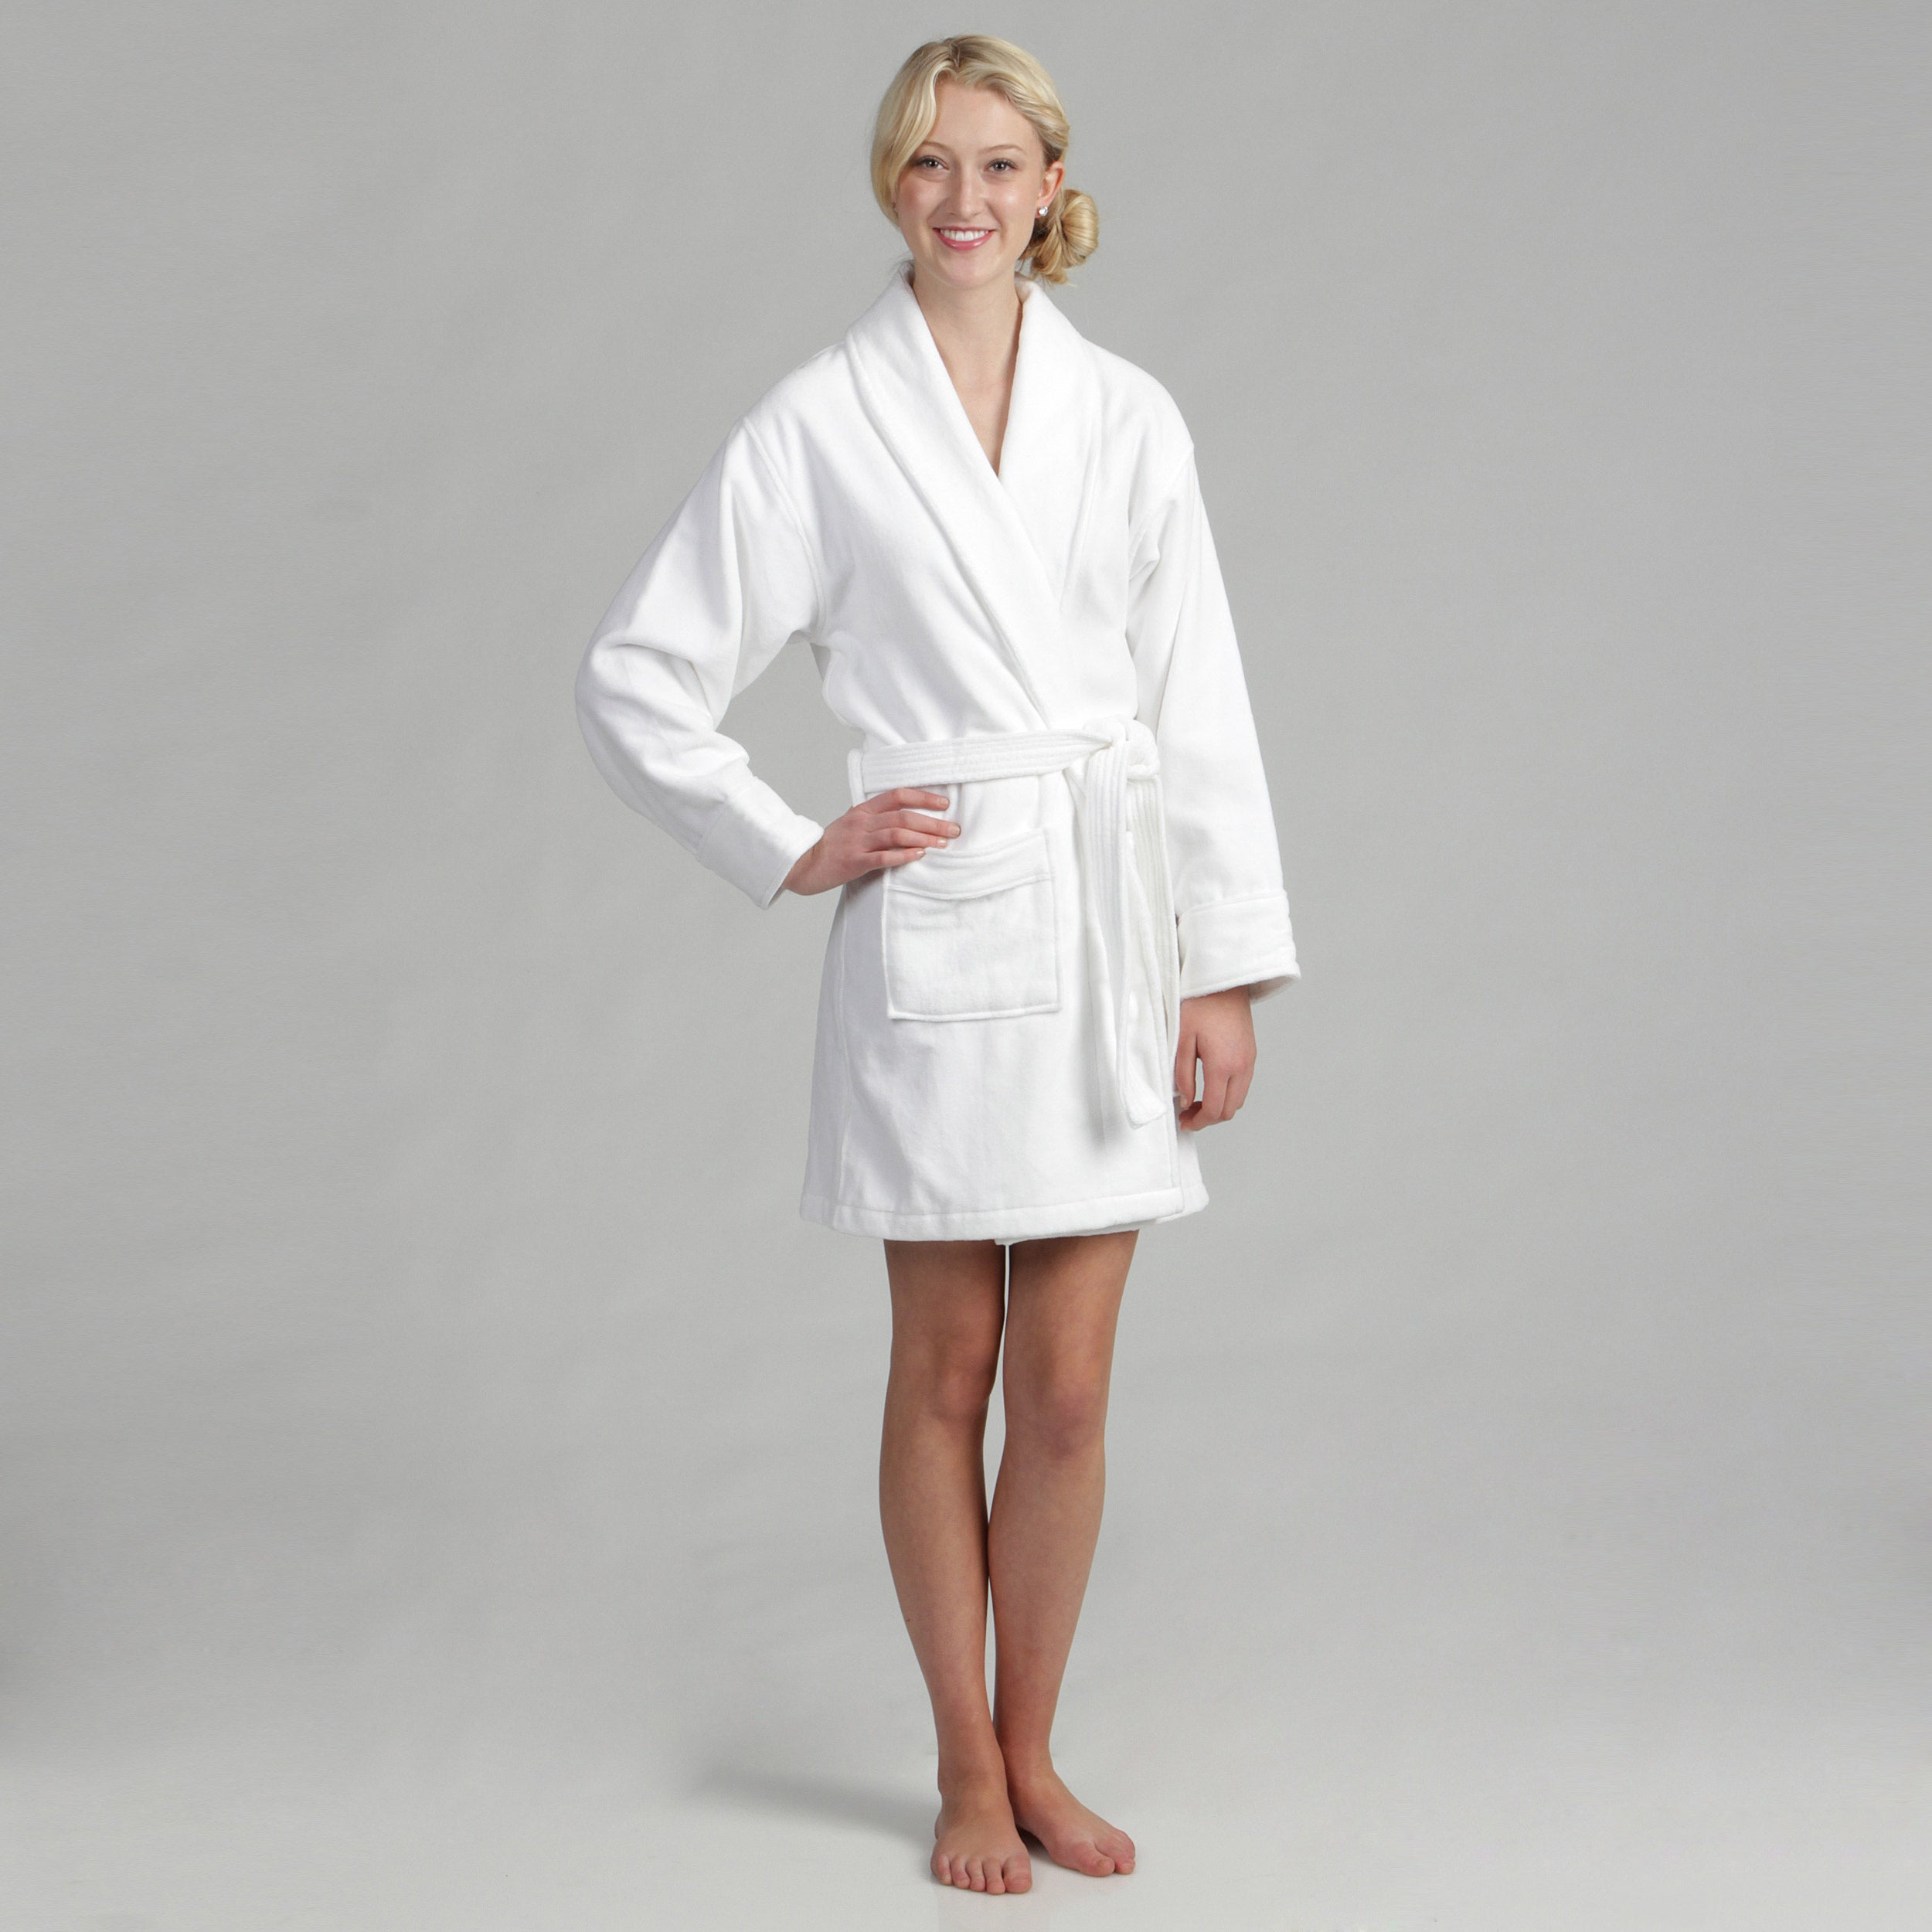 02374e979d Shop Women s Cotton Terrycloth Bath Robe - Free Shipping Today - Overstock  - 5510173